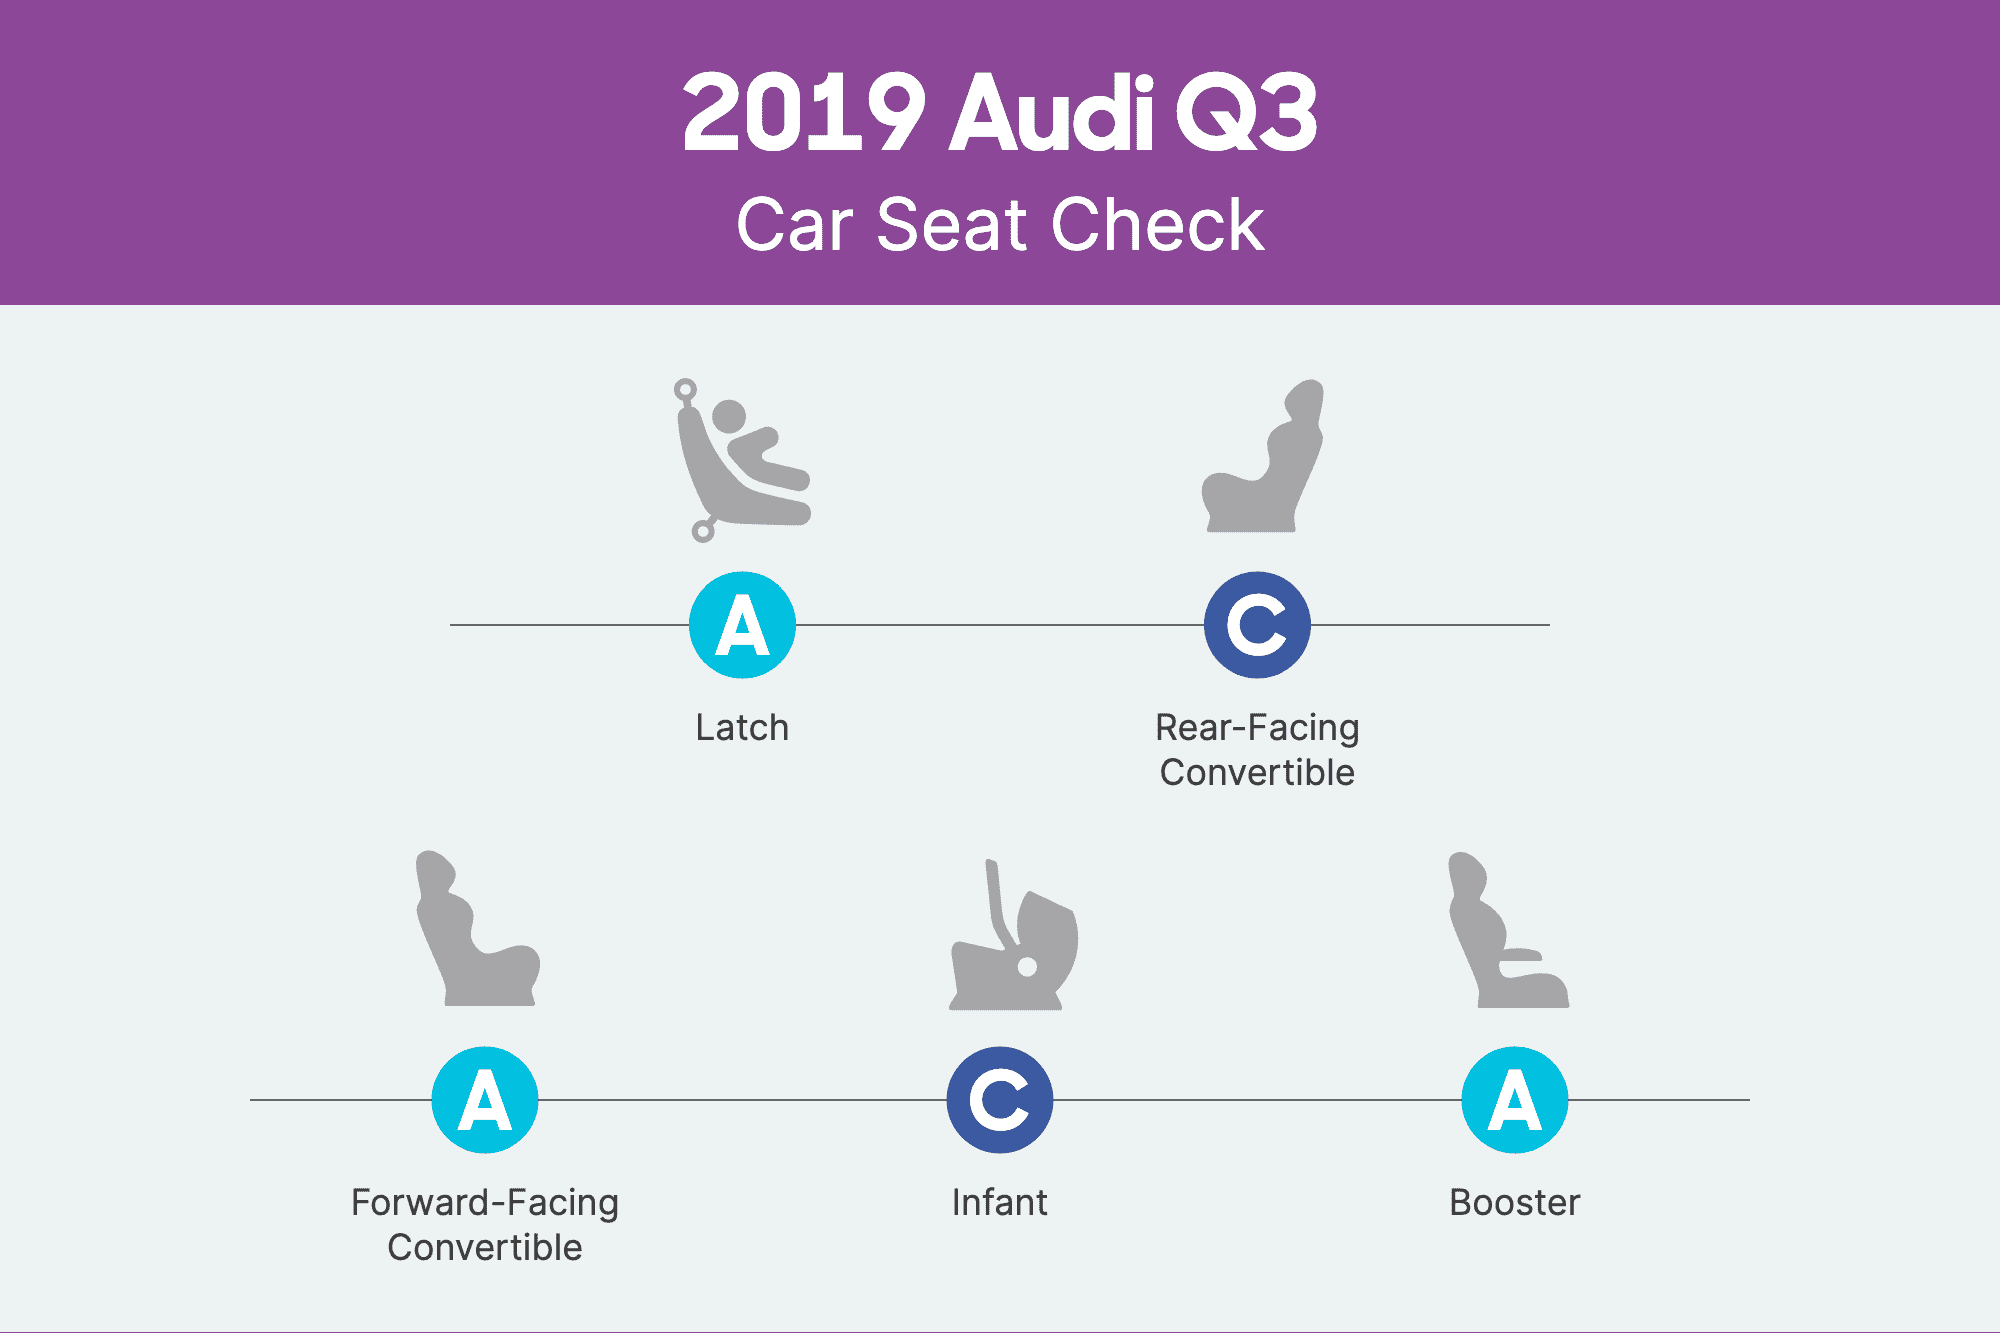 How Do Car Seats Fit in a 2019 Audi Q3?